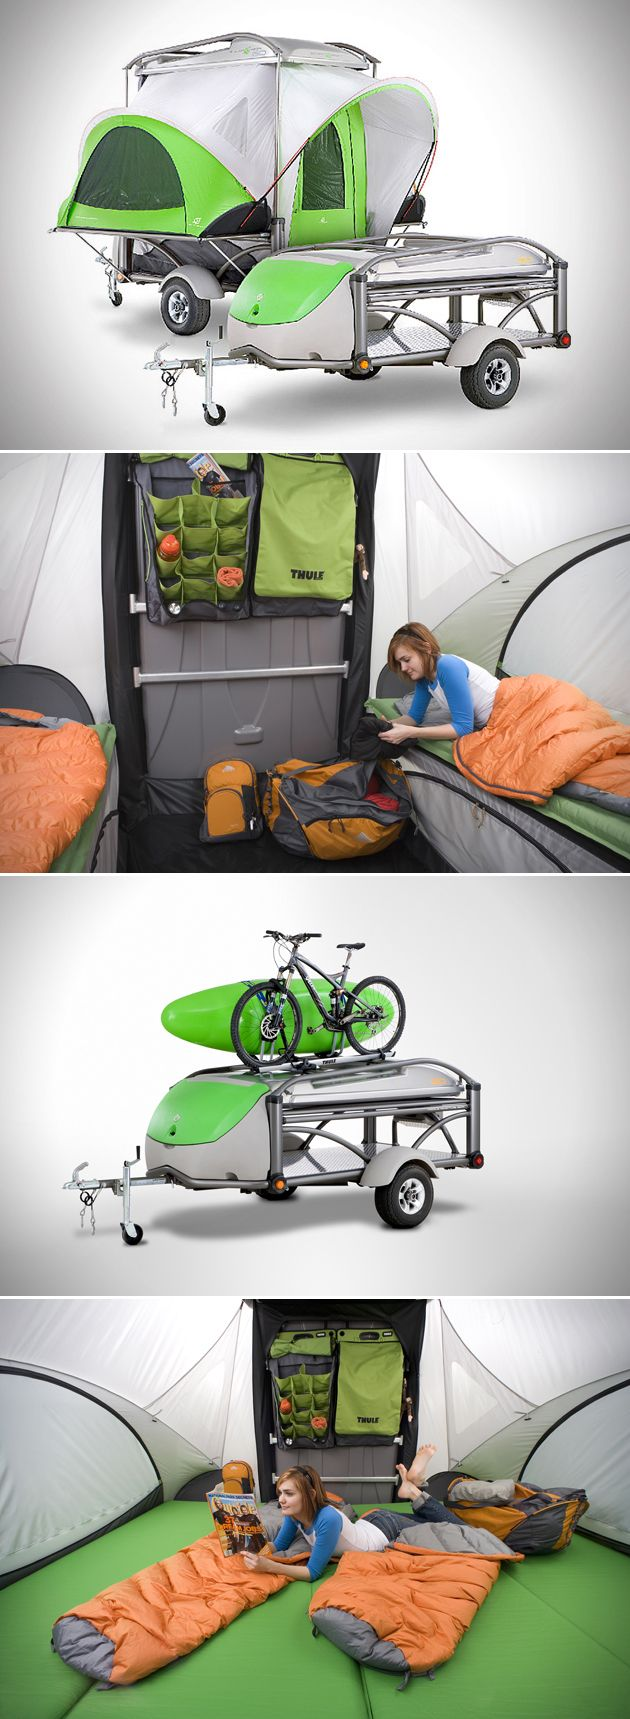 Go Camper Trailer from Sylvansport: http://go.sylvansport.com